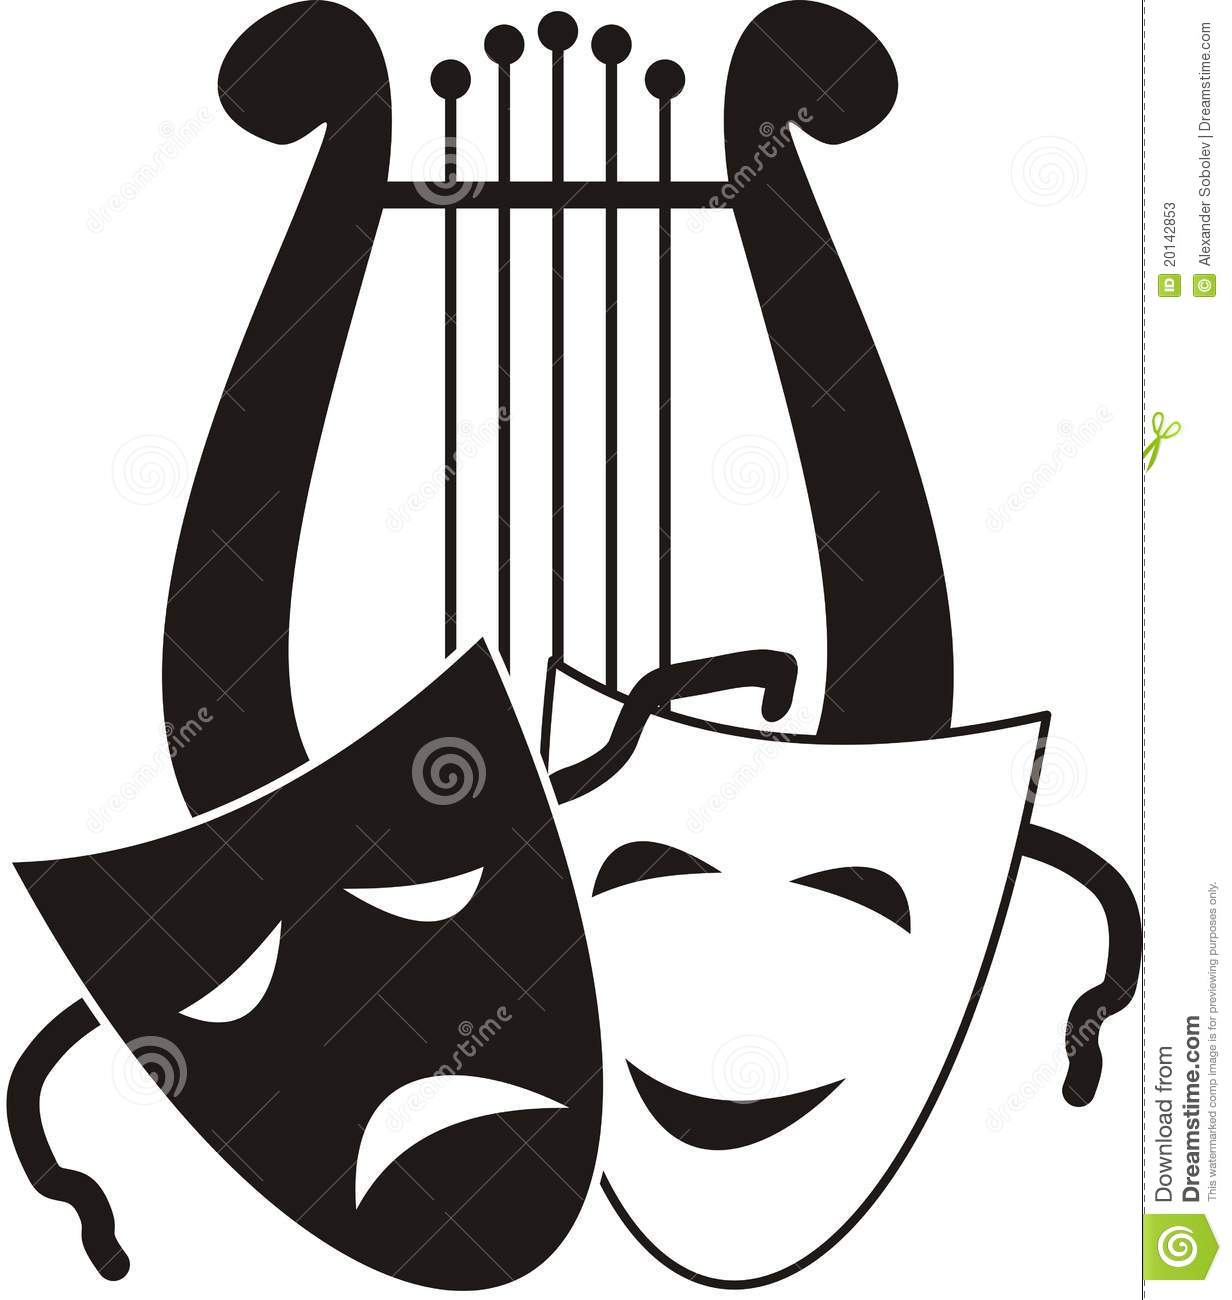 Lyre and masks stock vector. Image of apollo, greek ... Палитра Вектор